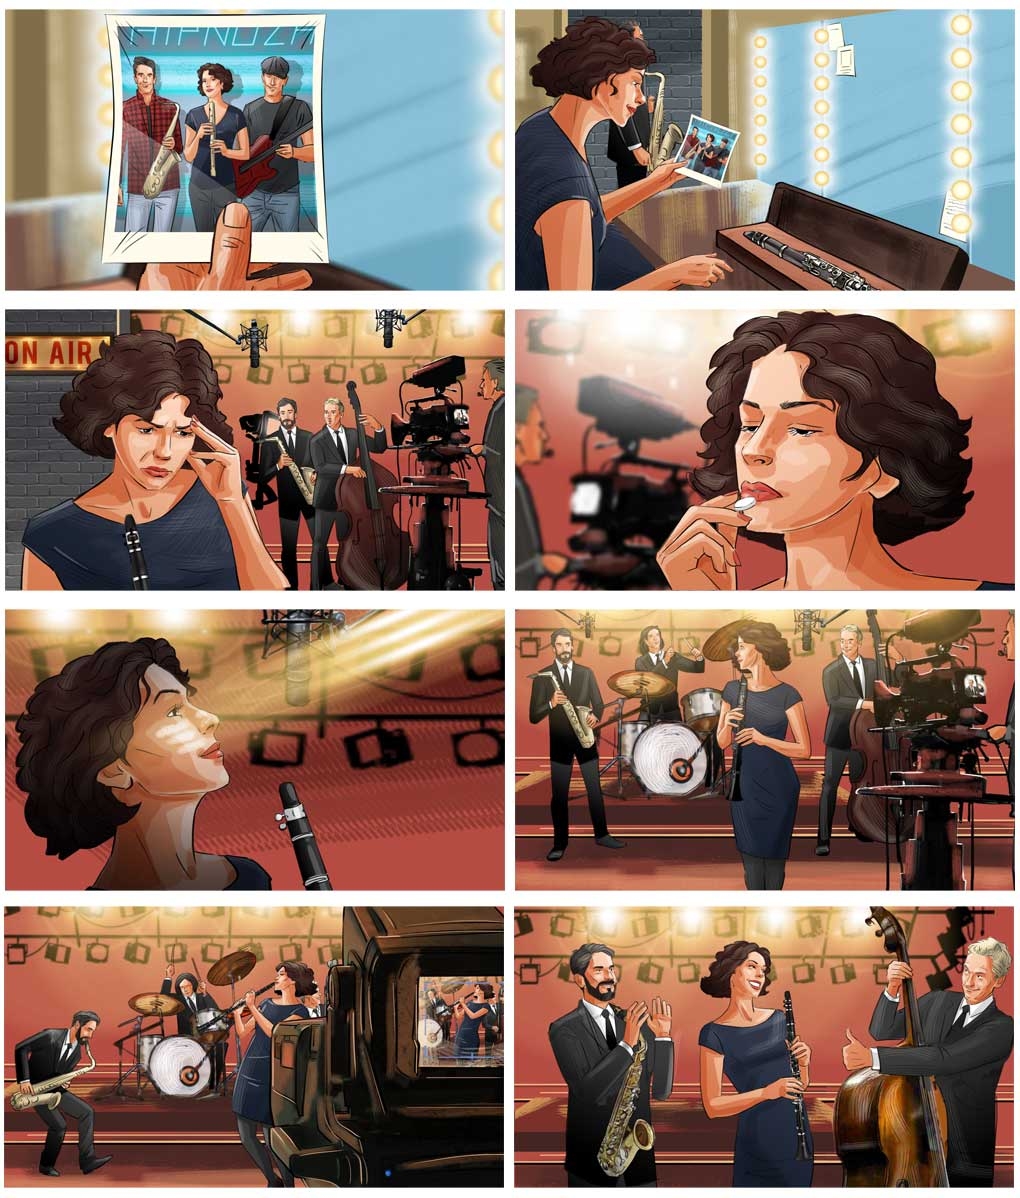 woman played concert medicine advertising storyboard